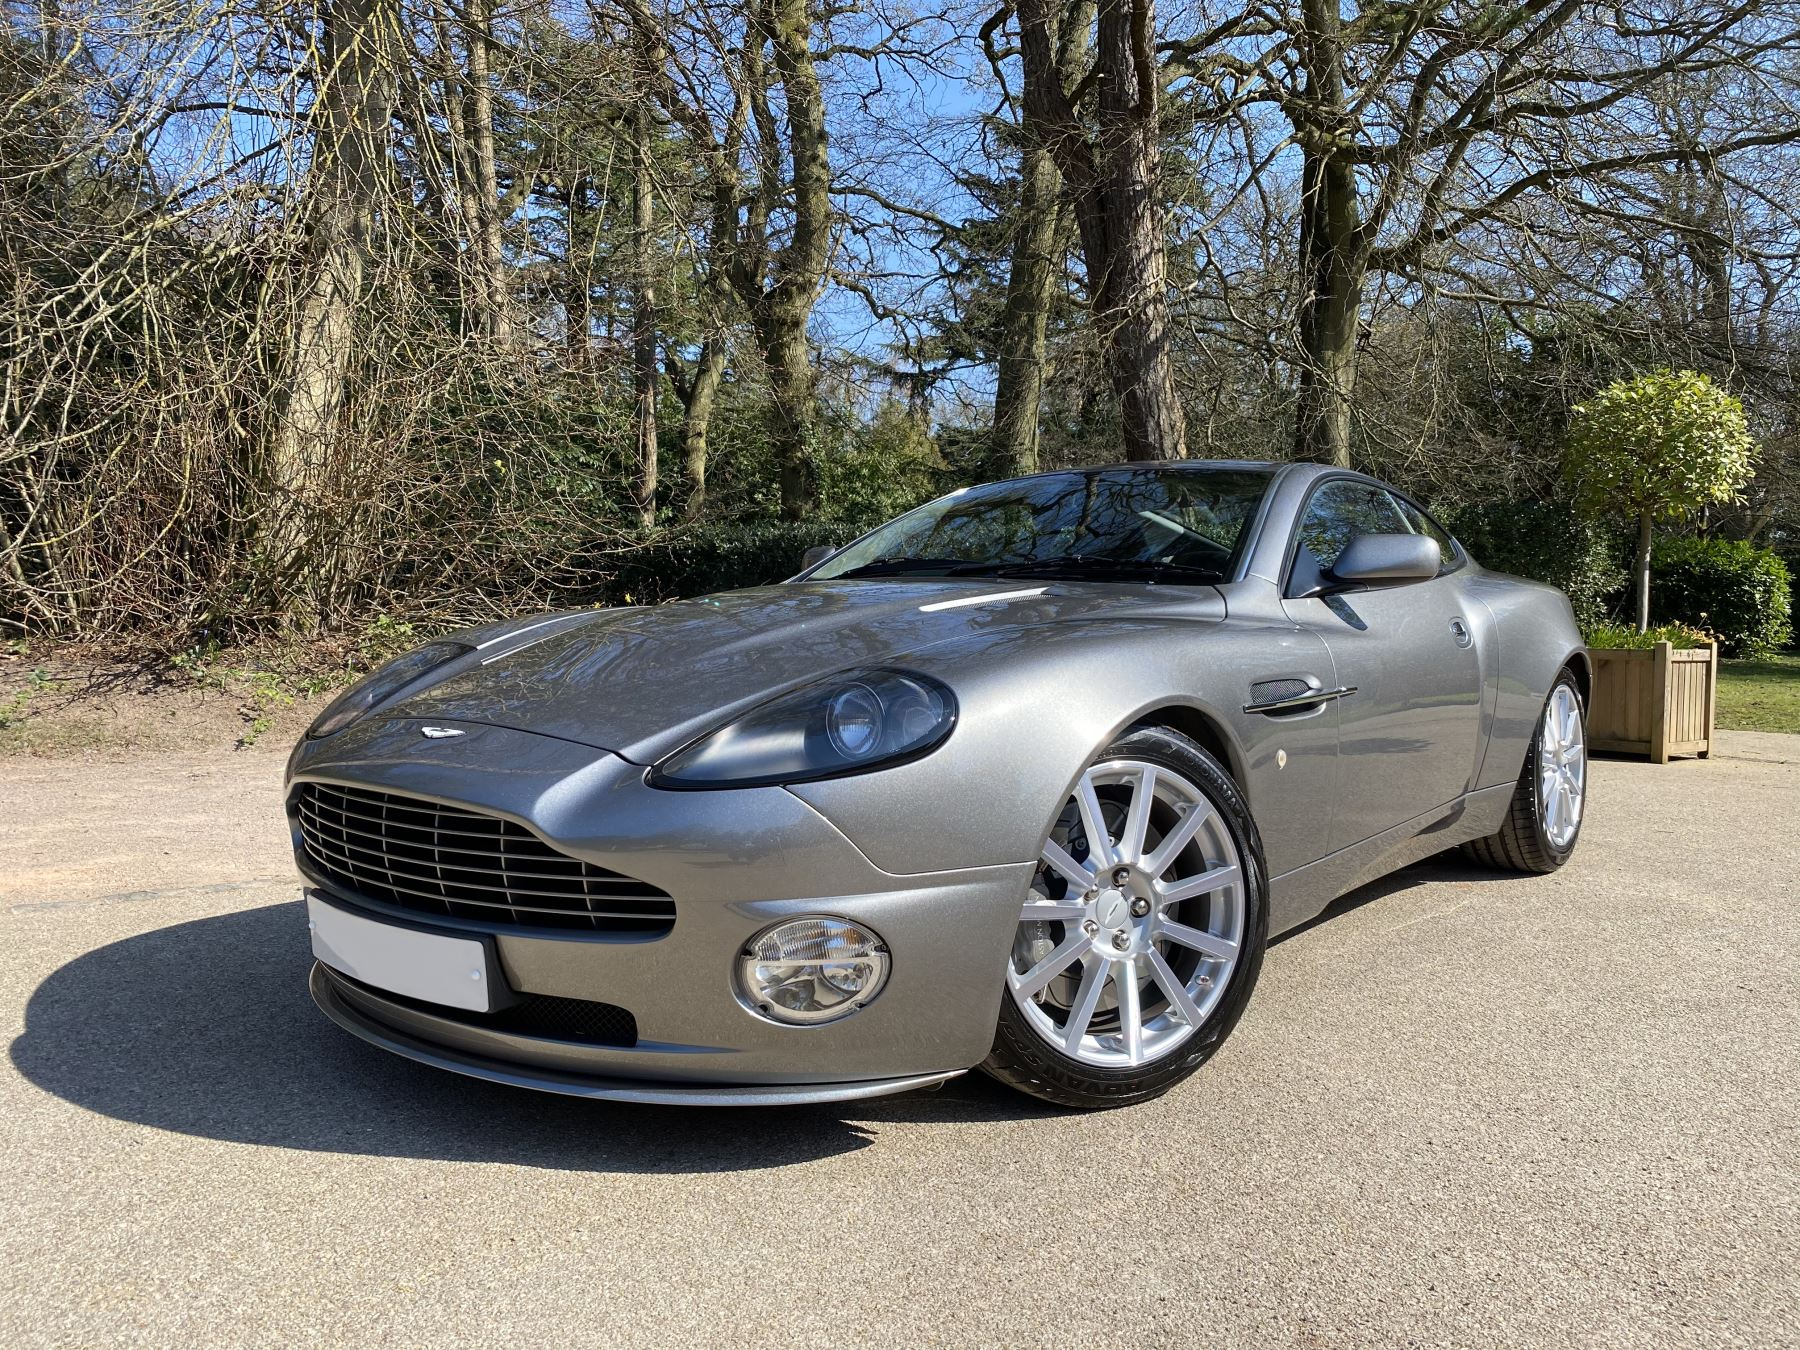 Aston Martin Vanquish S S V12 2+2 2dr 5.9 Automatic Coupe (2004) image